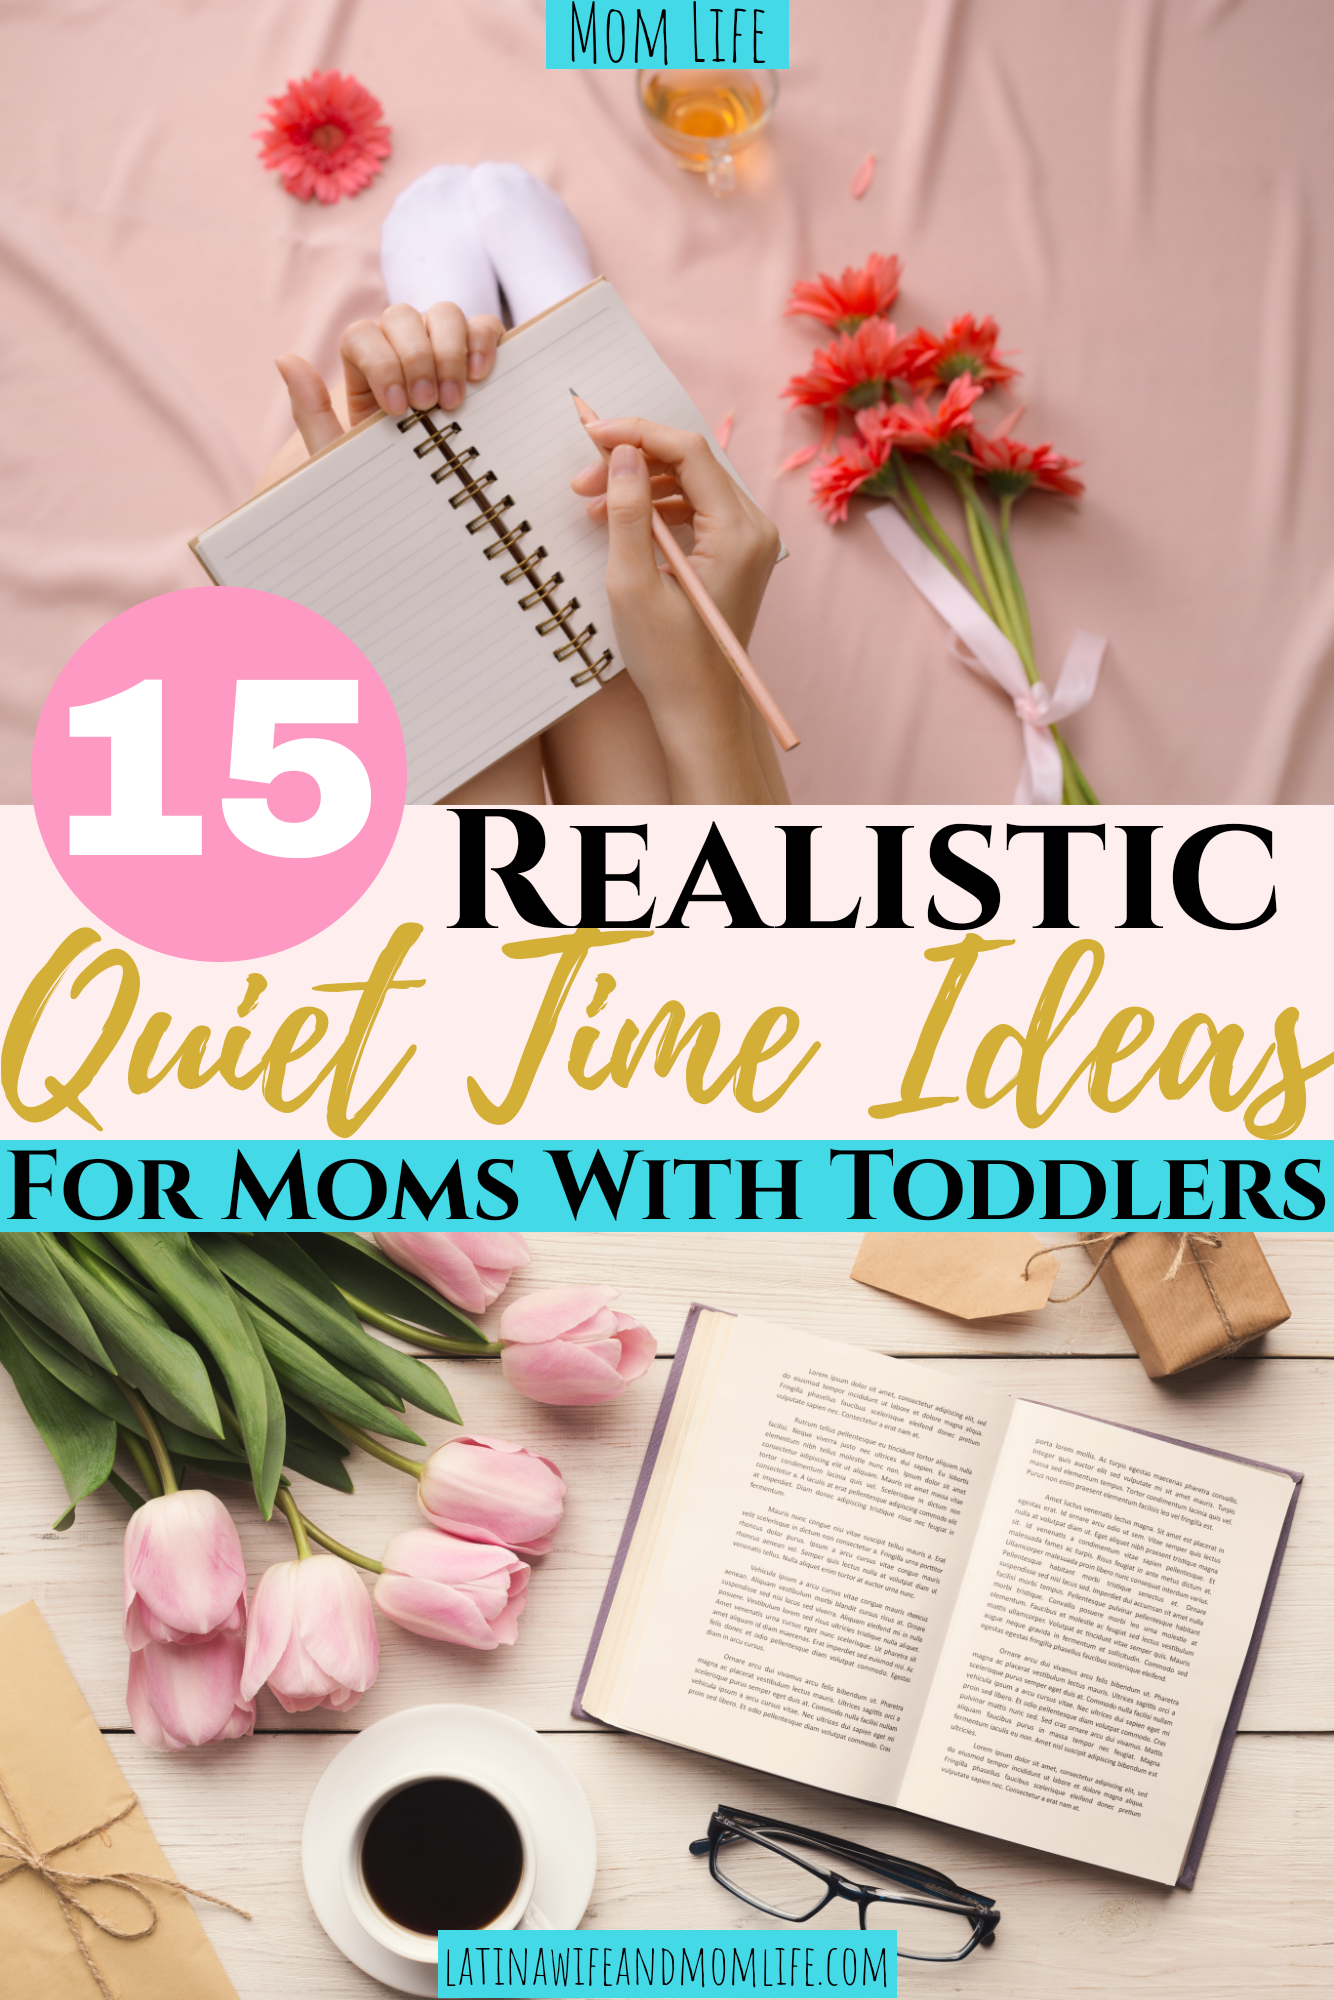 15 Realistic Quiet Time Ideas For Moms With Toddlers